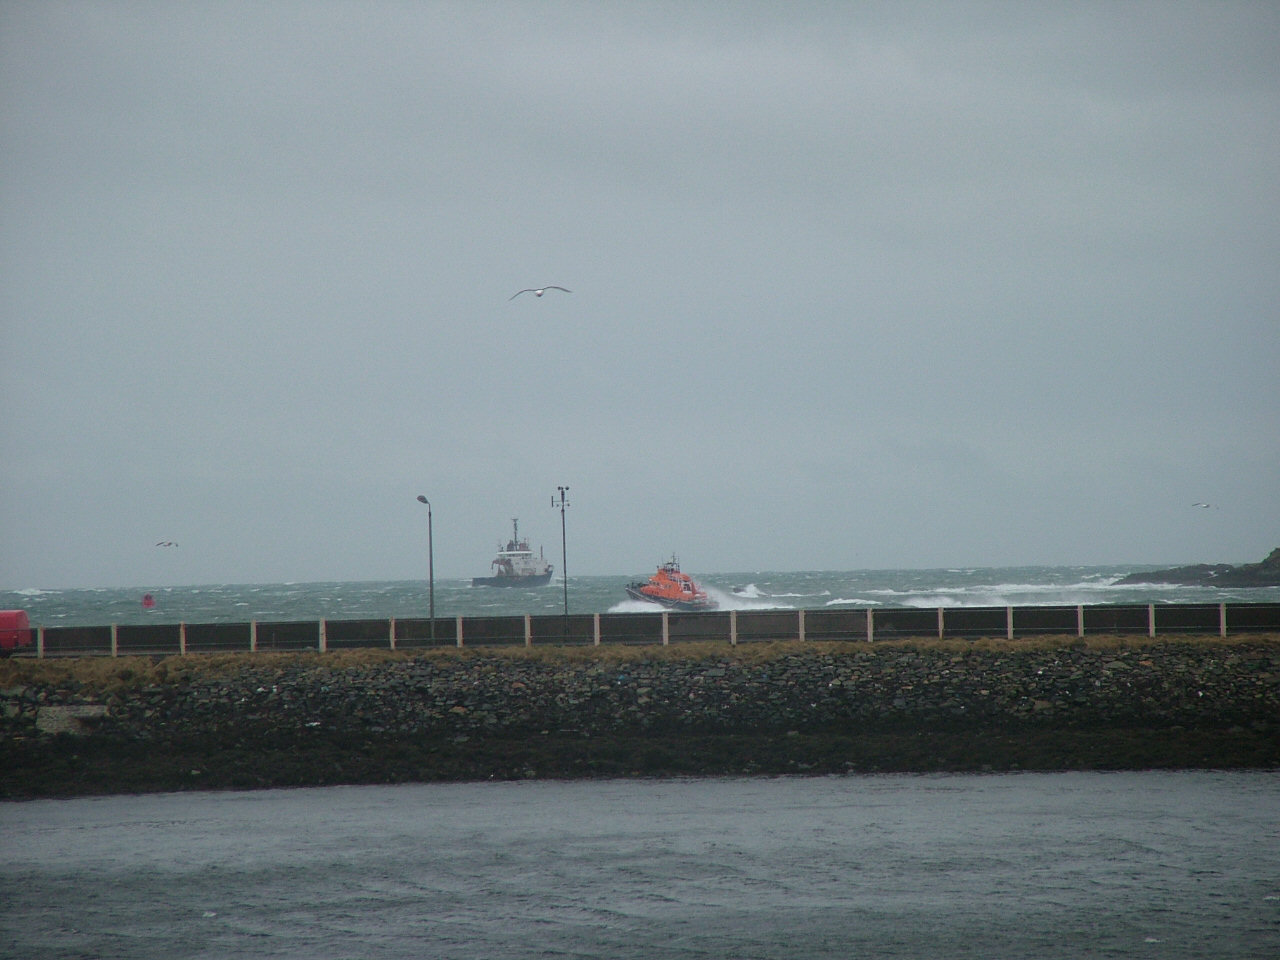 Lifeboat going out; tugboat heading in same direction